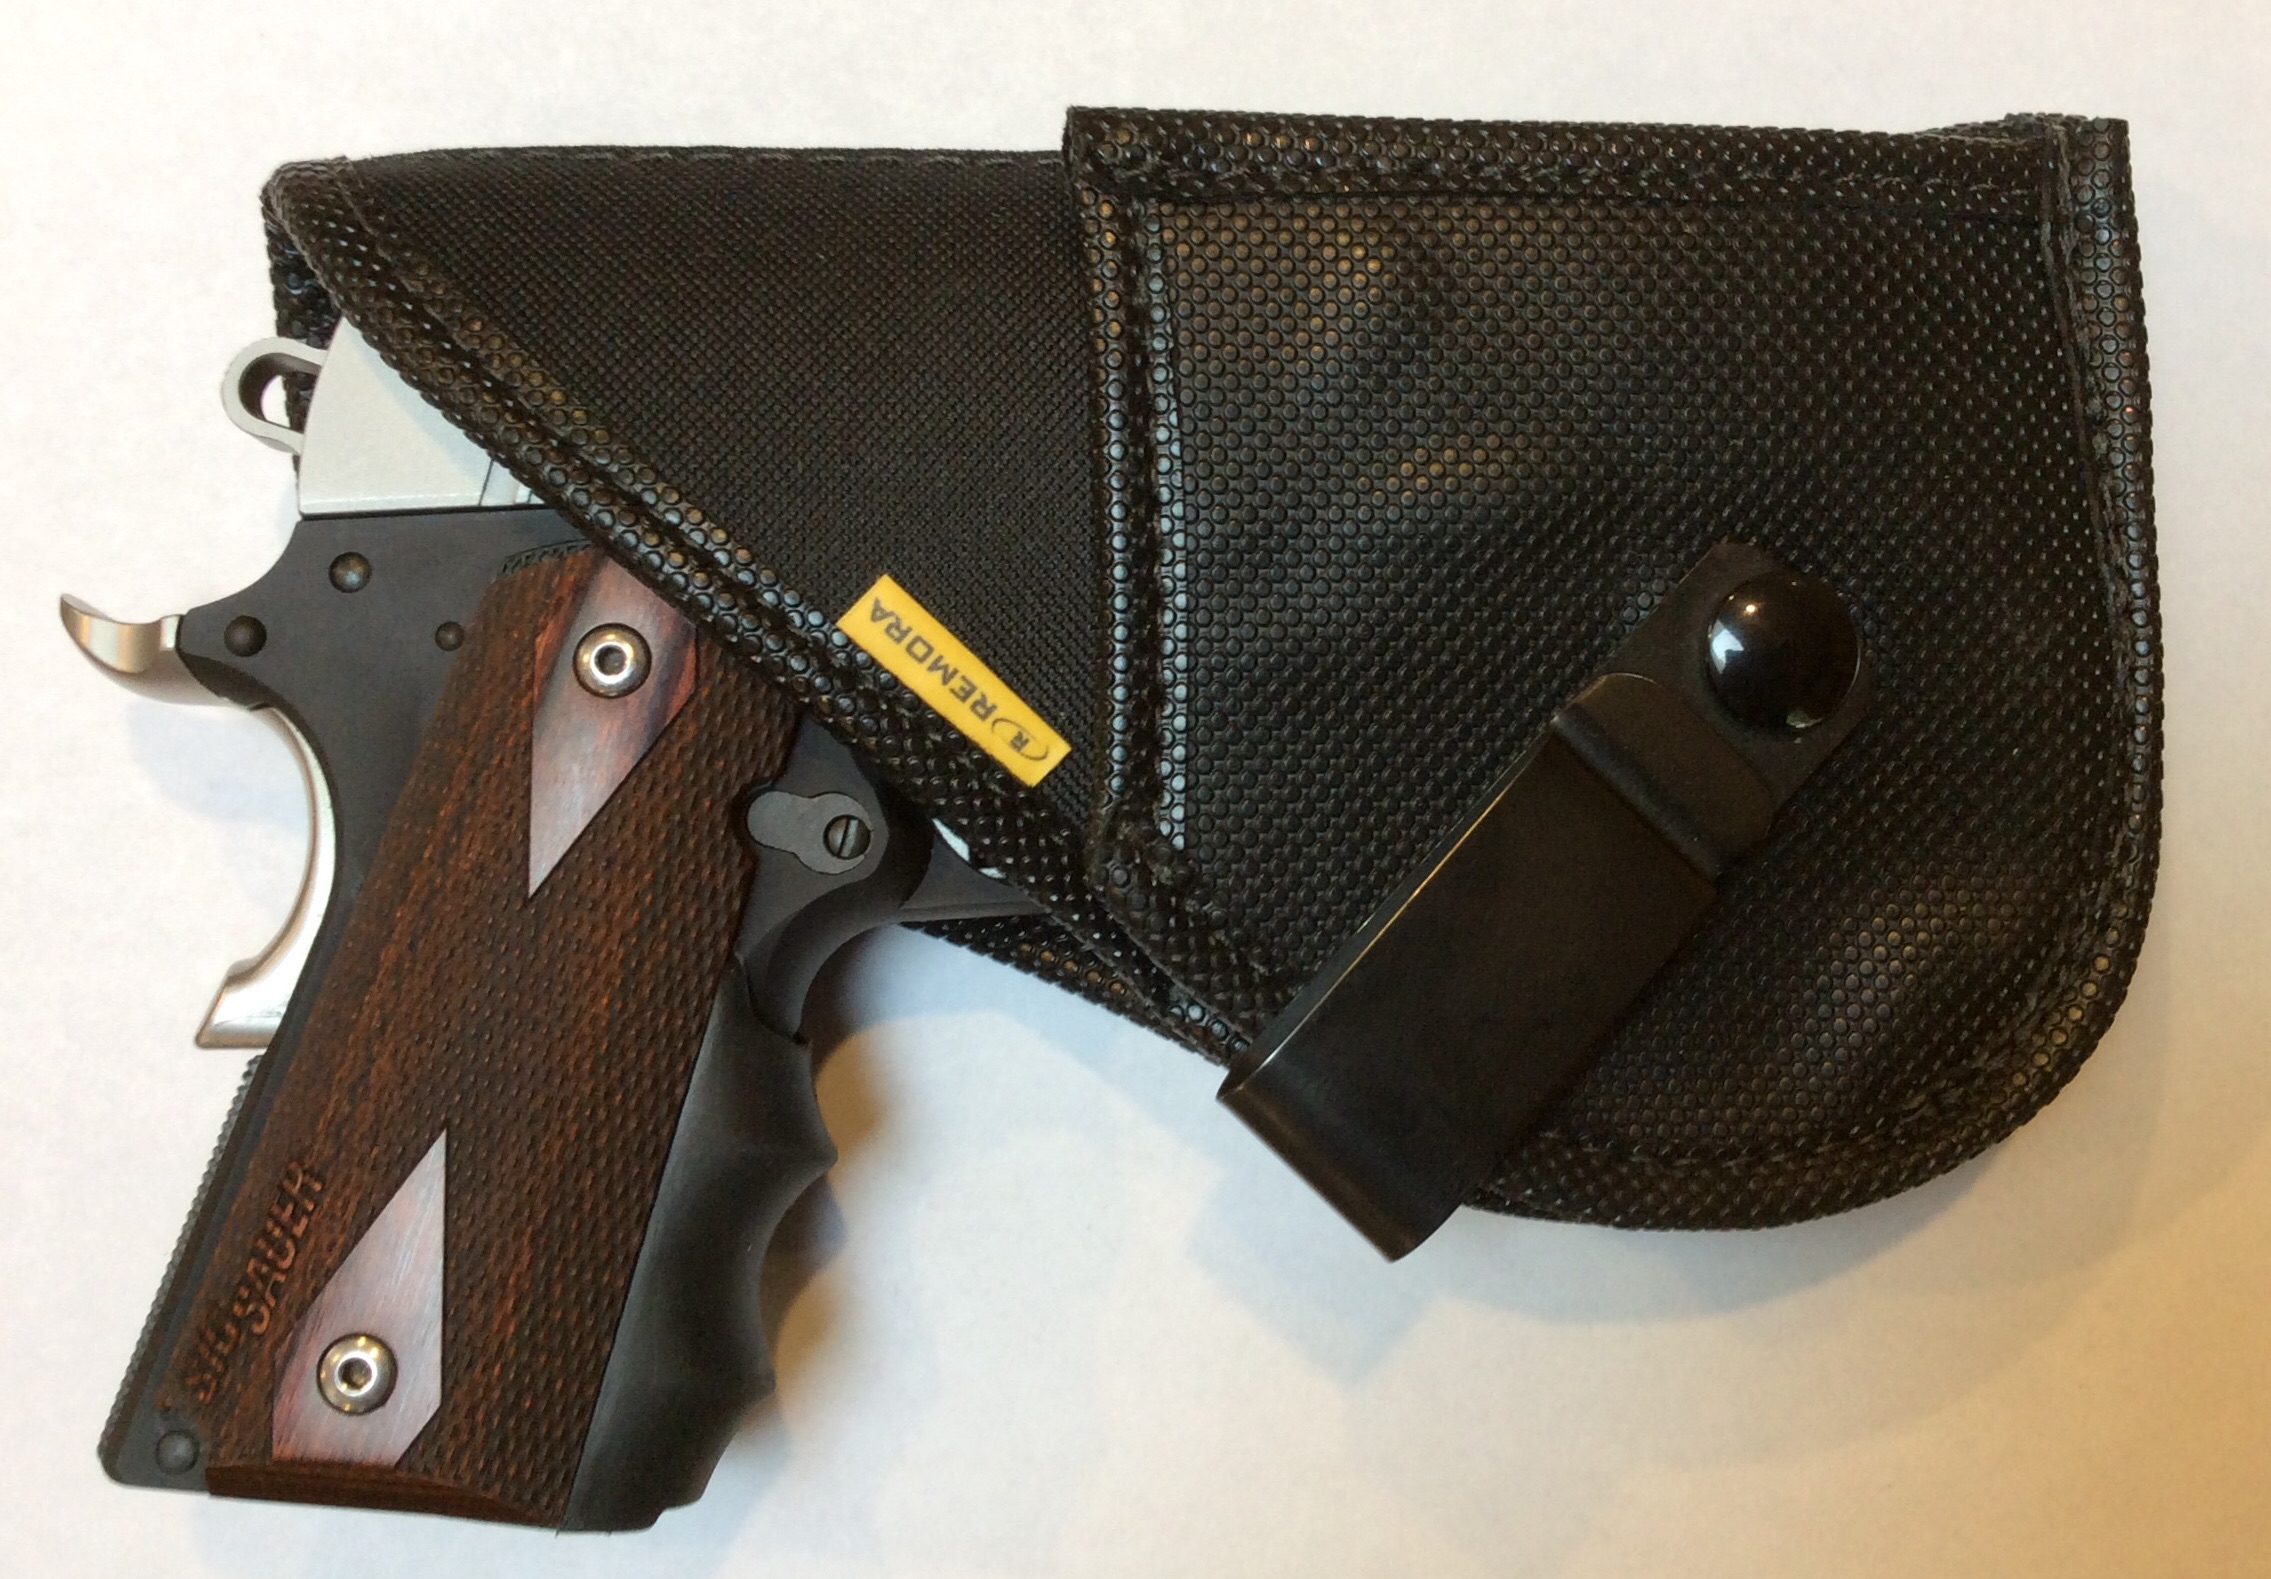 The Remora Tuckable Holster Review and Giveaway